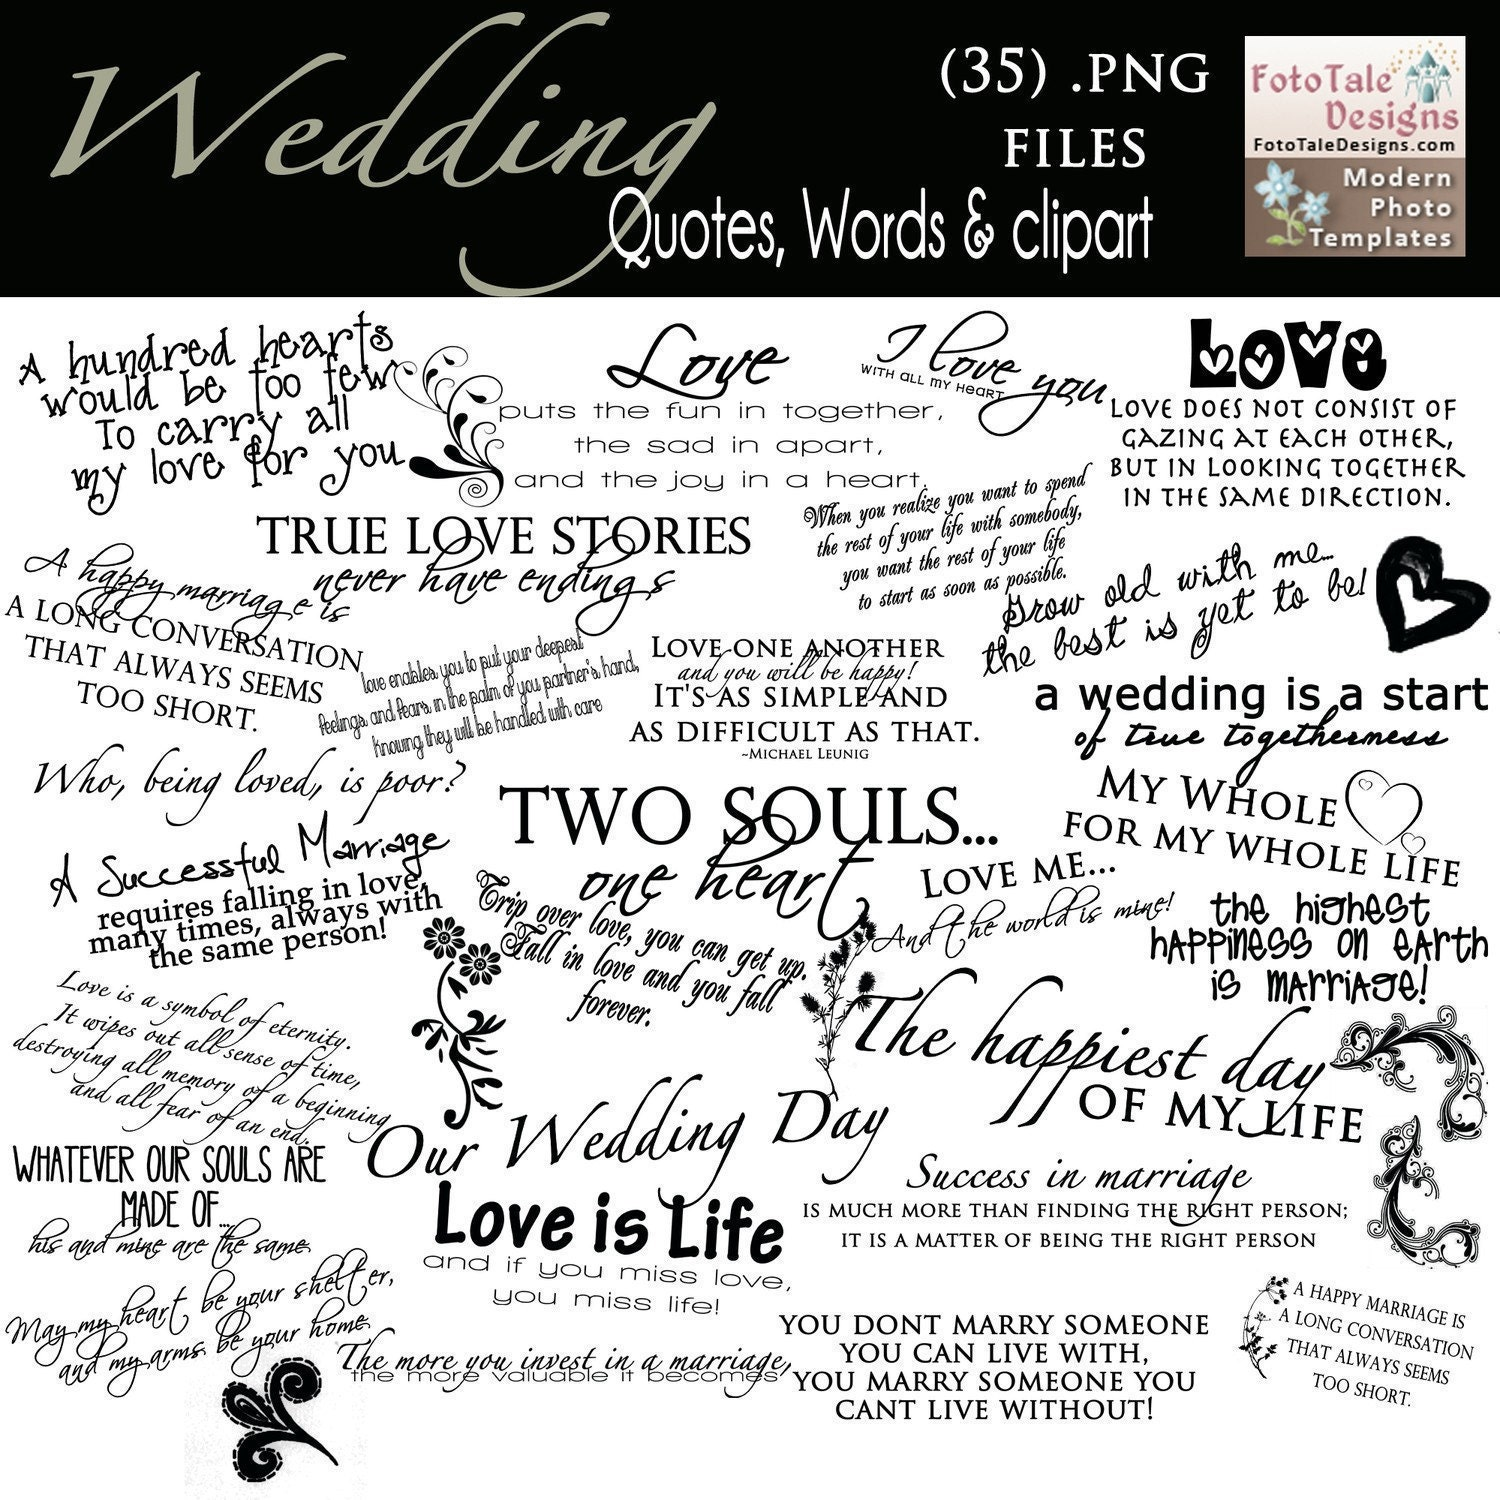 Wedding Quotes And Sayings For Scrapbooks Wedding Scrapbook Ideas    Wedding Quotes And Sayings For Scrapbooks